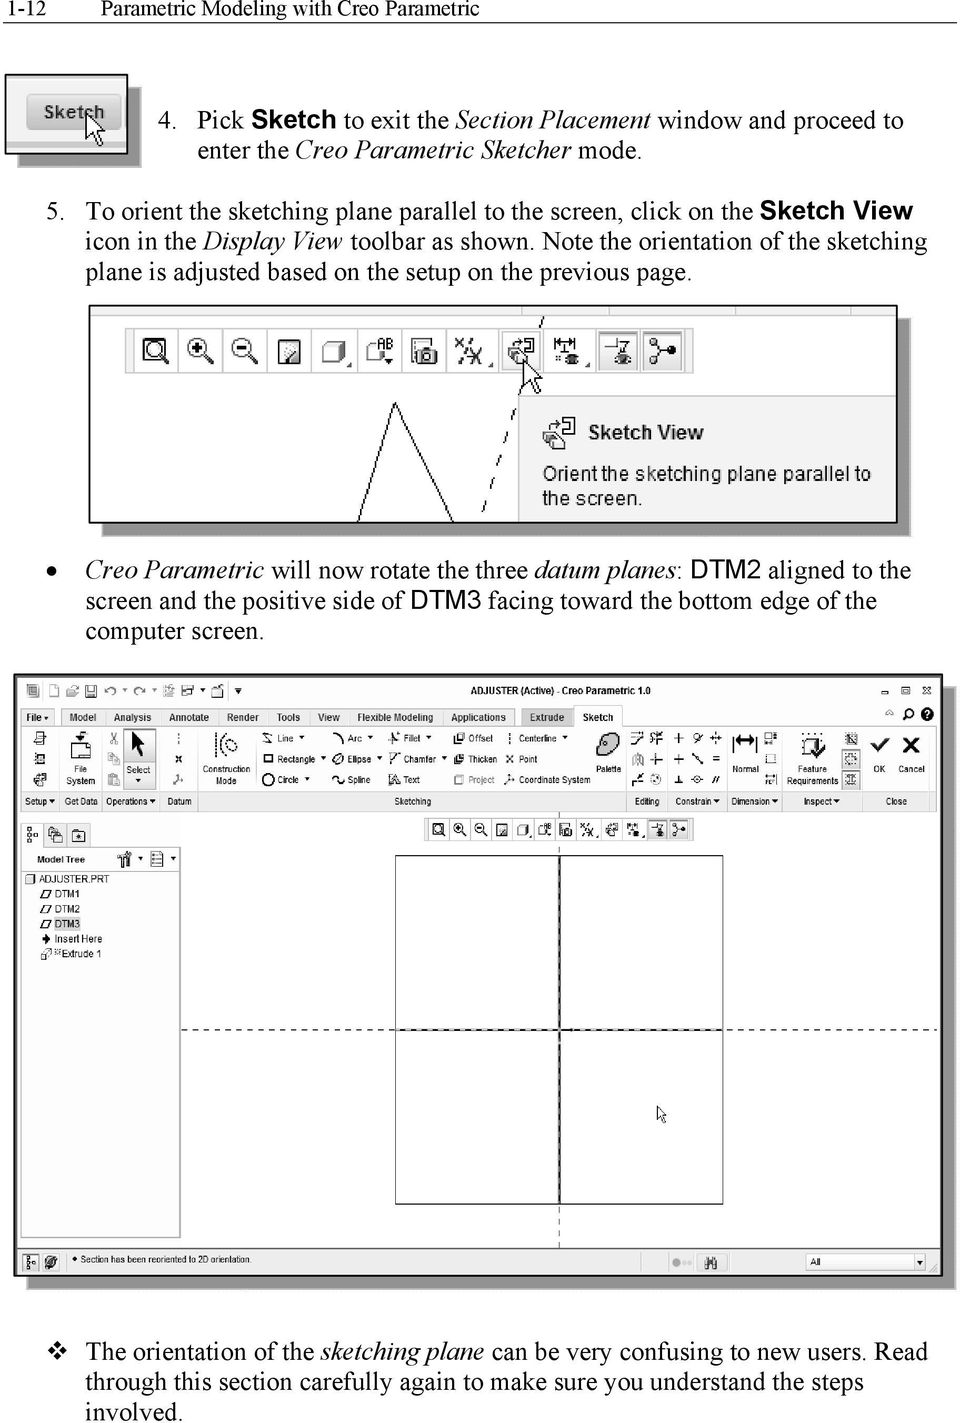 Note the orientation of the sketching plane is adjusted based on the setup on the previous page.